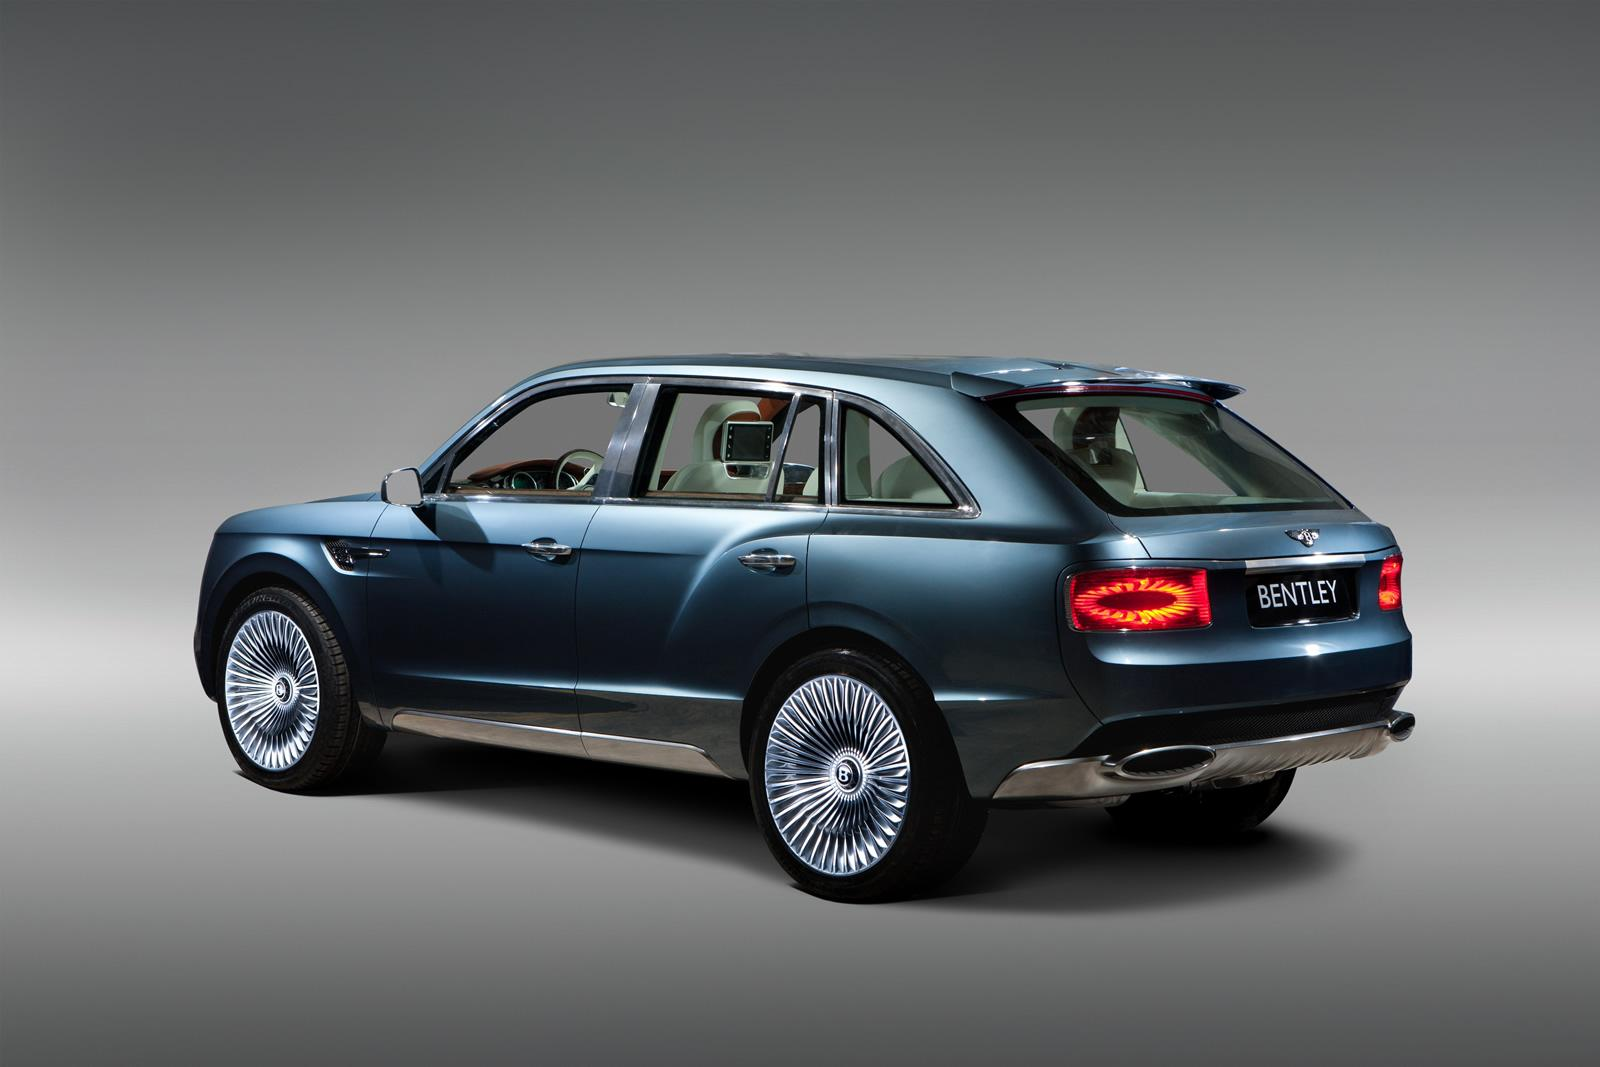 2013 Bentley EXP 9 F SUV Concept 2 2013 Bentley EXP 9 F SUV Concept   An Updated Tech Report